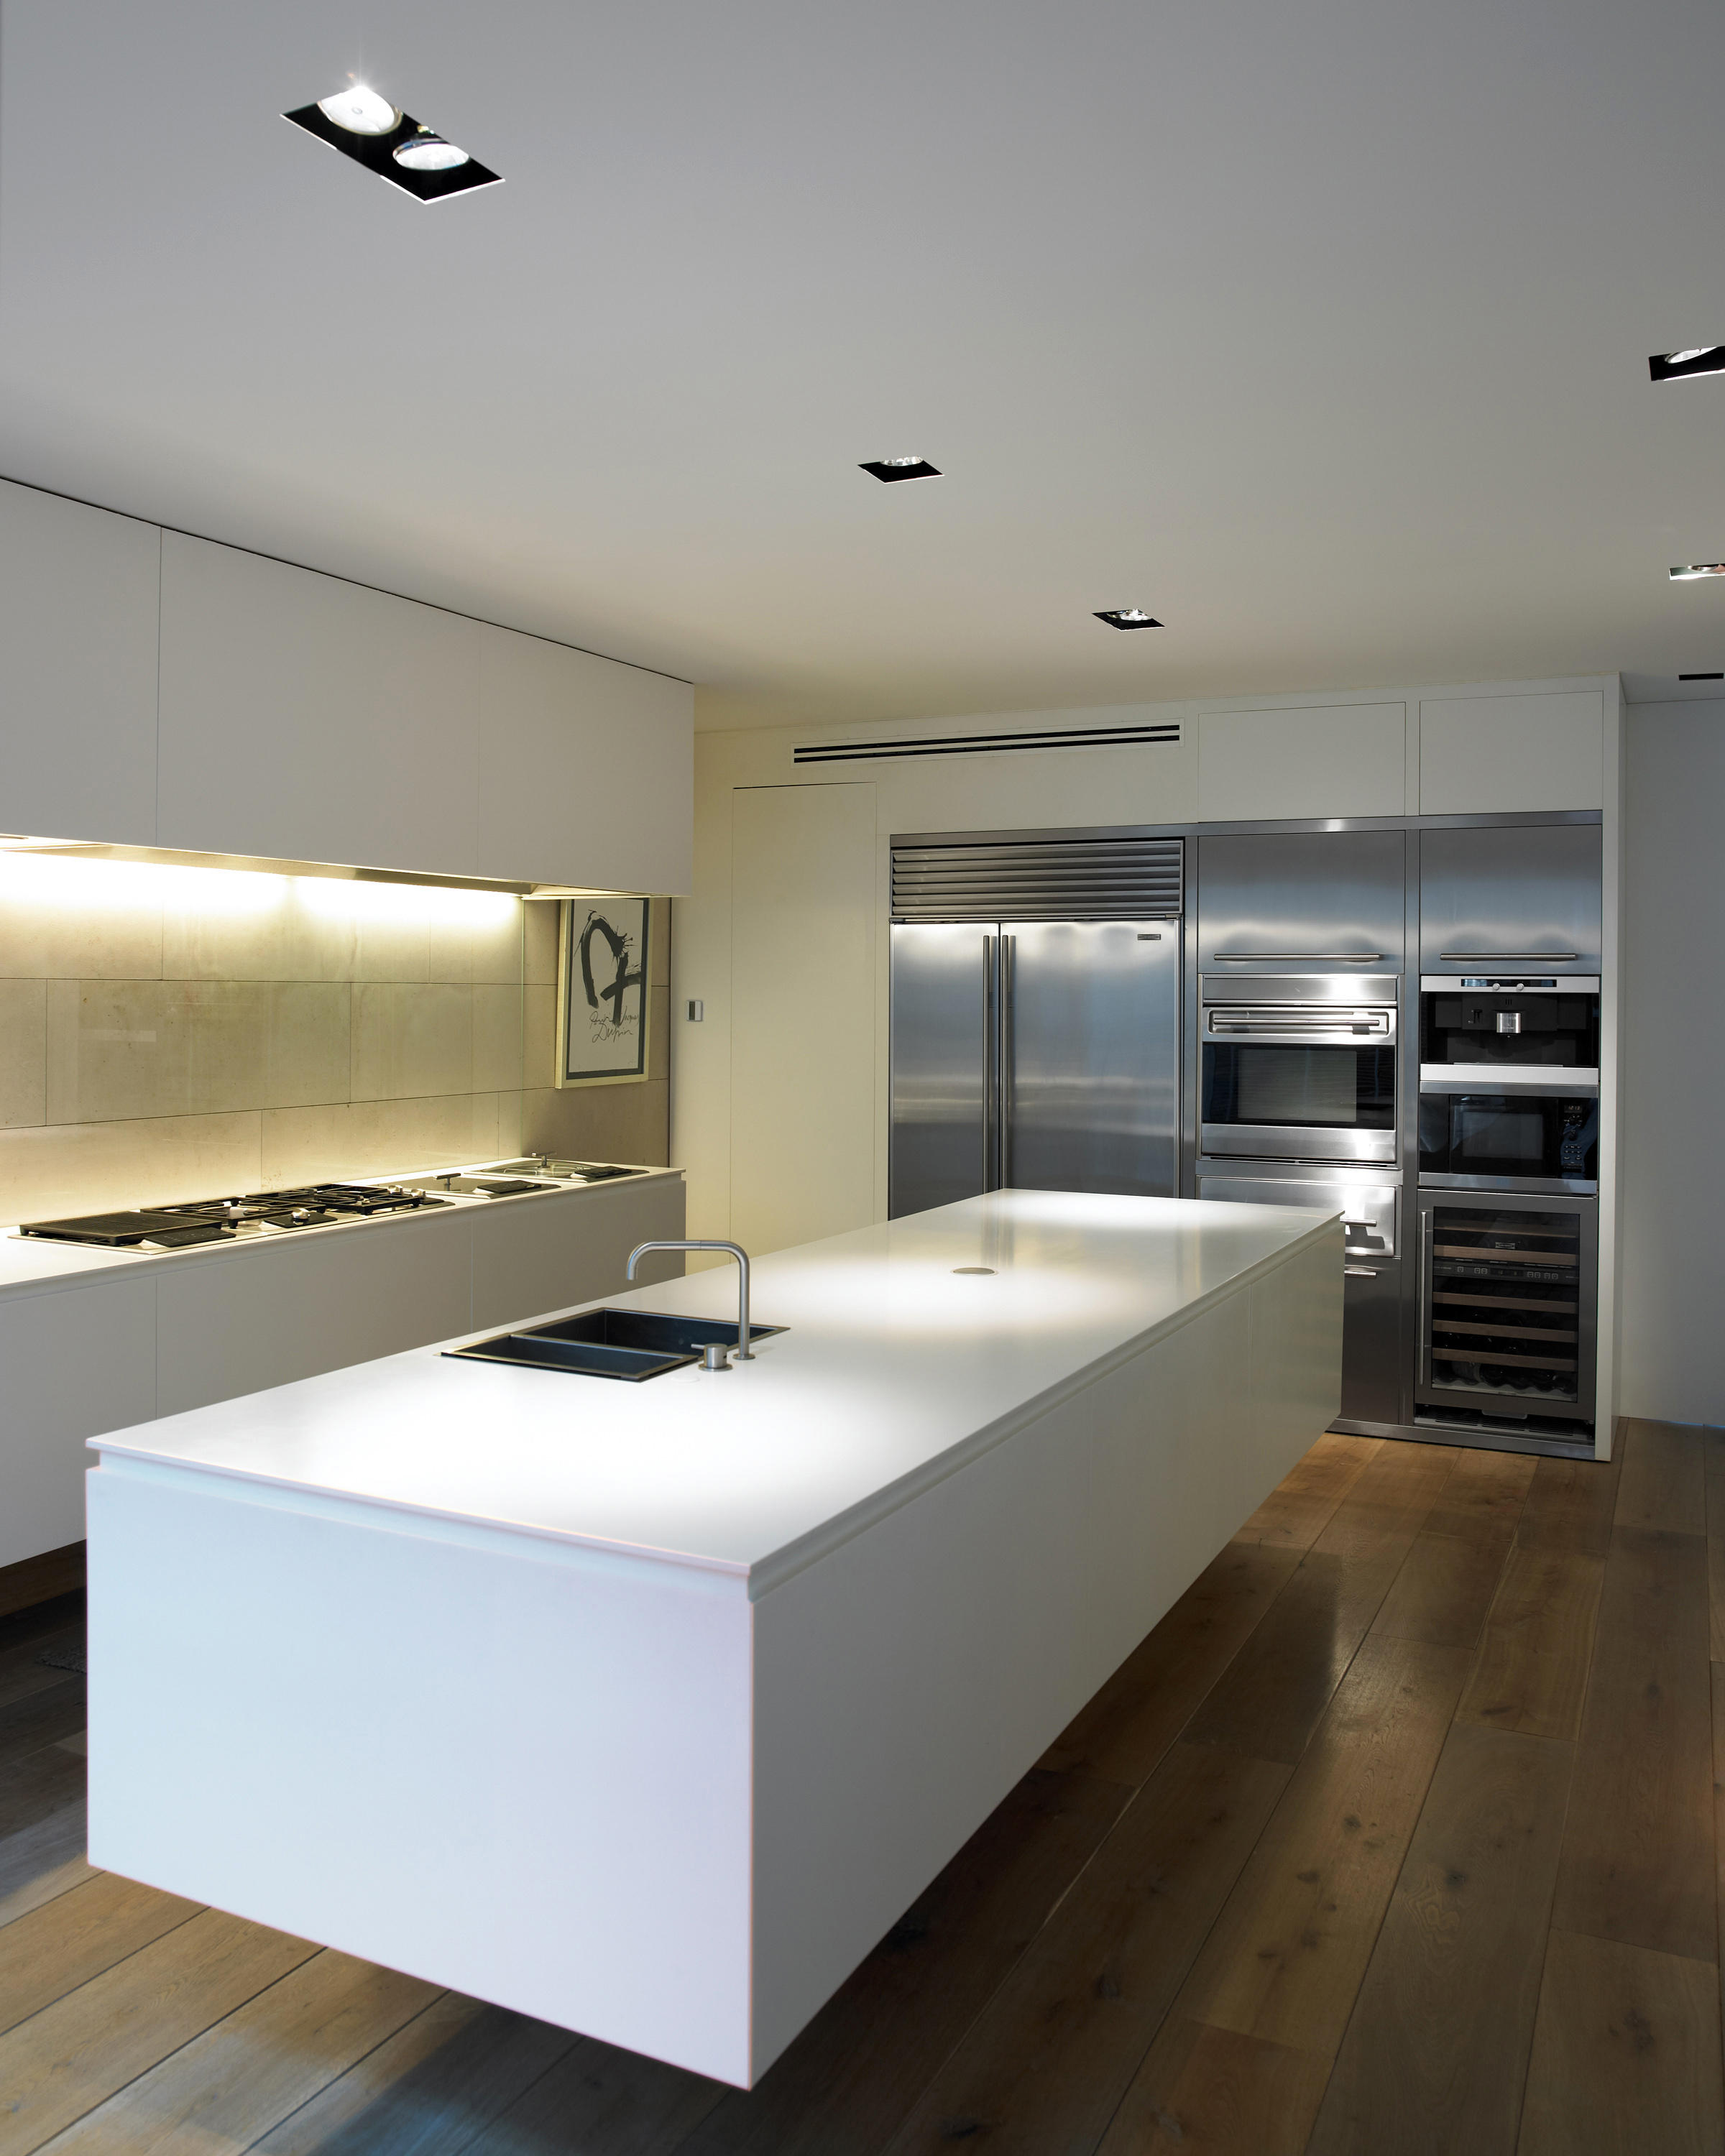 floating kitchen island best sink brands deep system recessed ceiling lights from b lux architonic